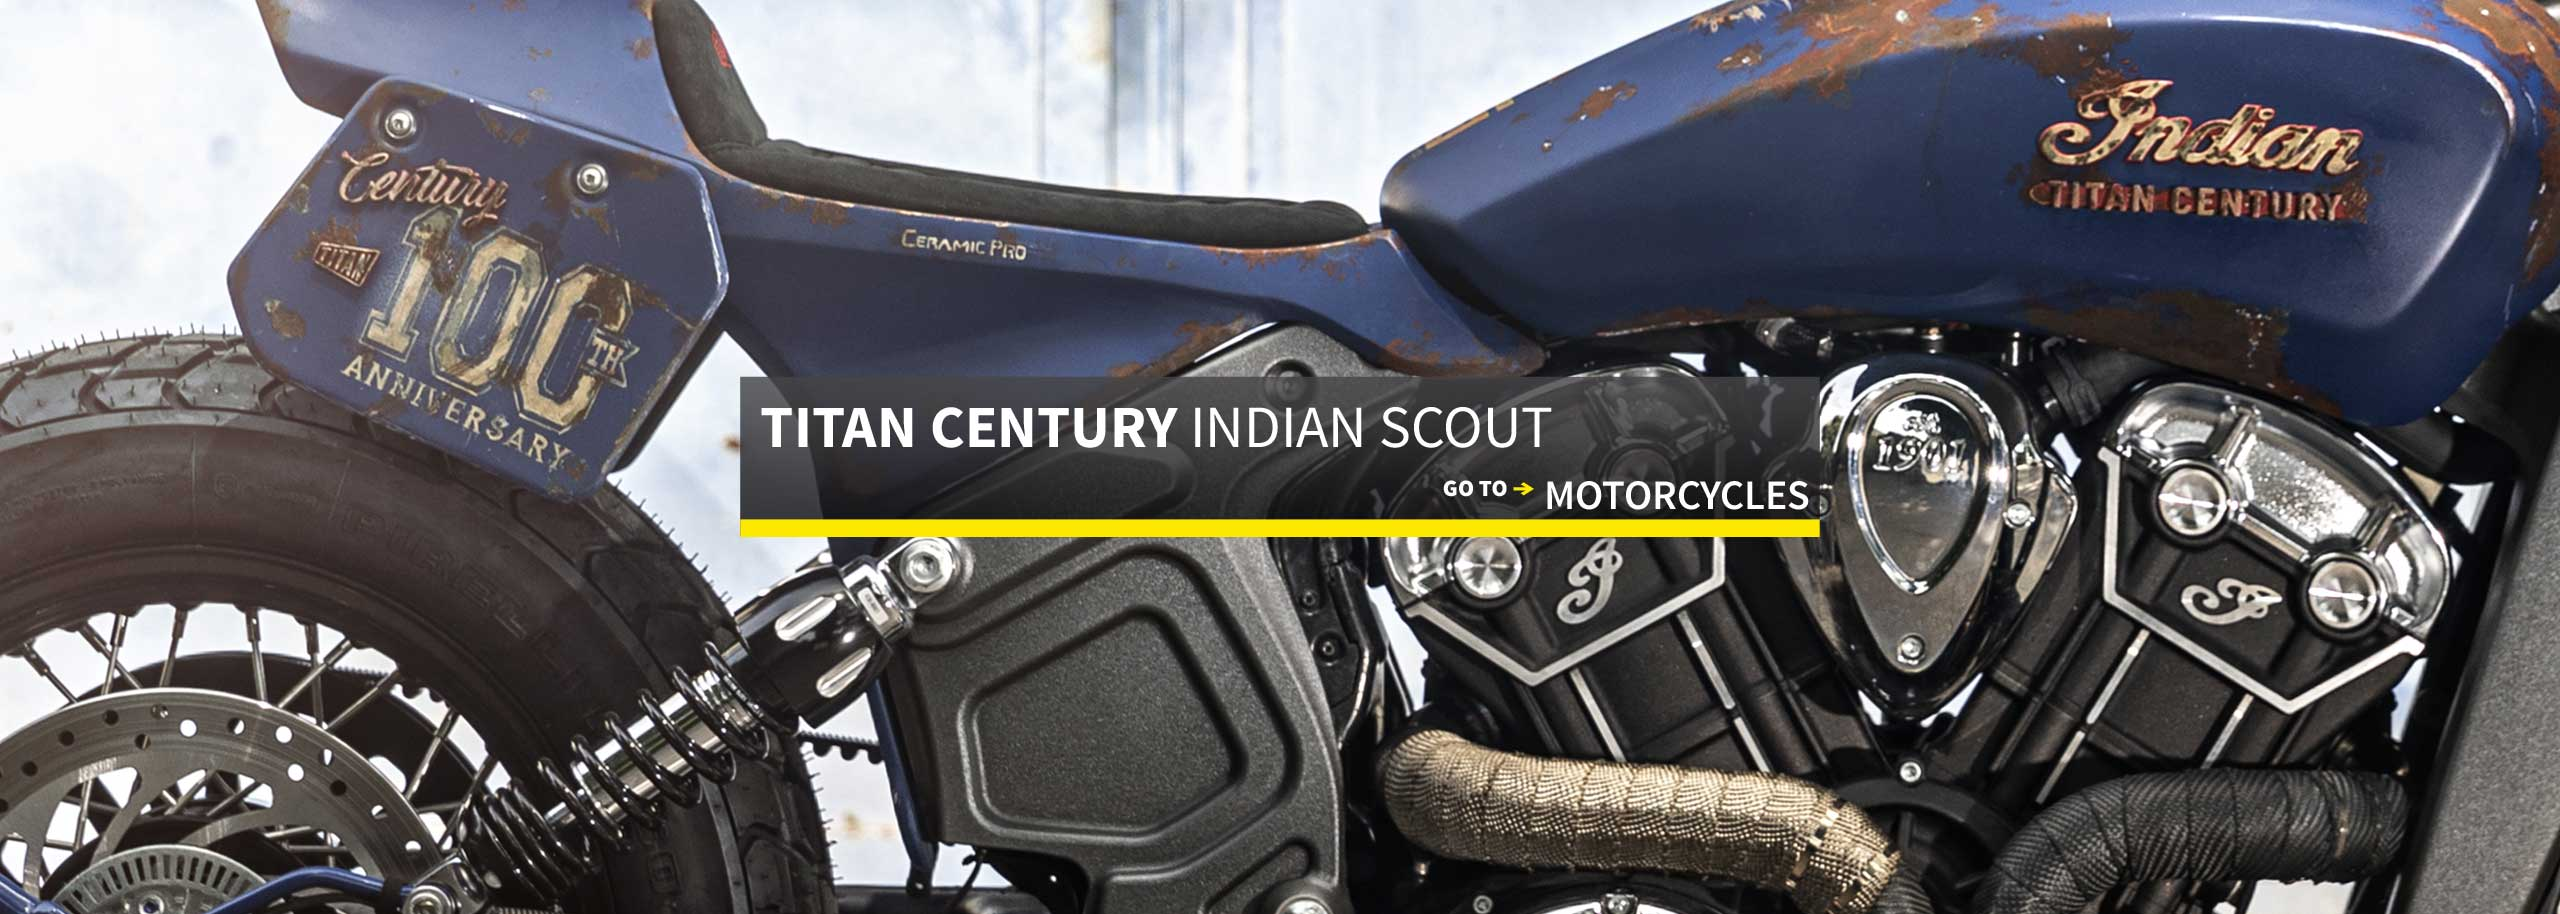 08-Titan-Motorcycles_TITAN-Century-Indian-Flat-Tracker-Indian-Scout-Custom-CafeRacer-CustomBike-Graz-Austria